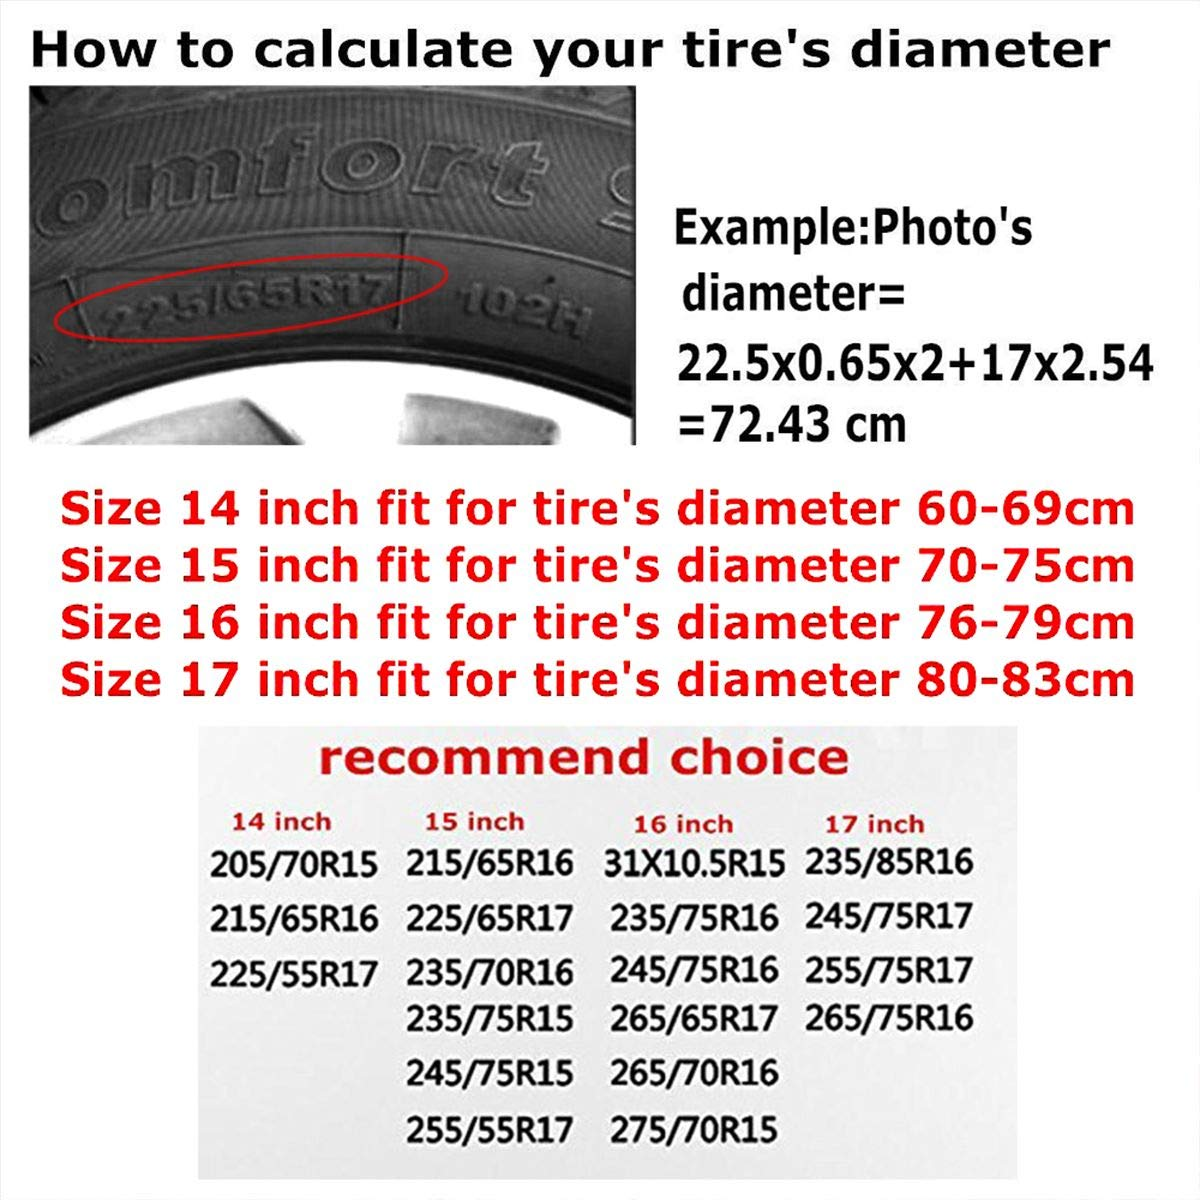 FPSMOUPD Tire Covers Pink Coral Alpaca Spare Tire Cover Waterproof Dust-Proof Universal Spare Wheel Tire Cover Fit forTrailer SUV and Many Vehicle RV